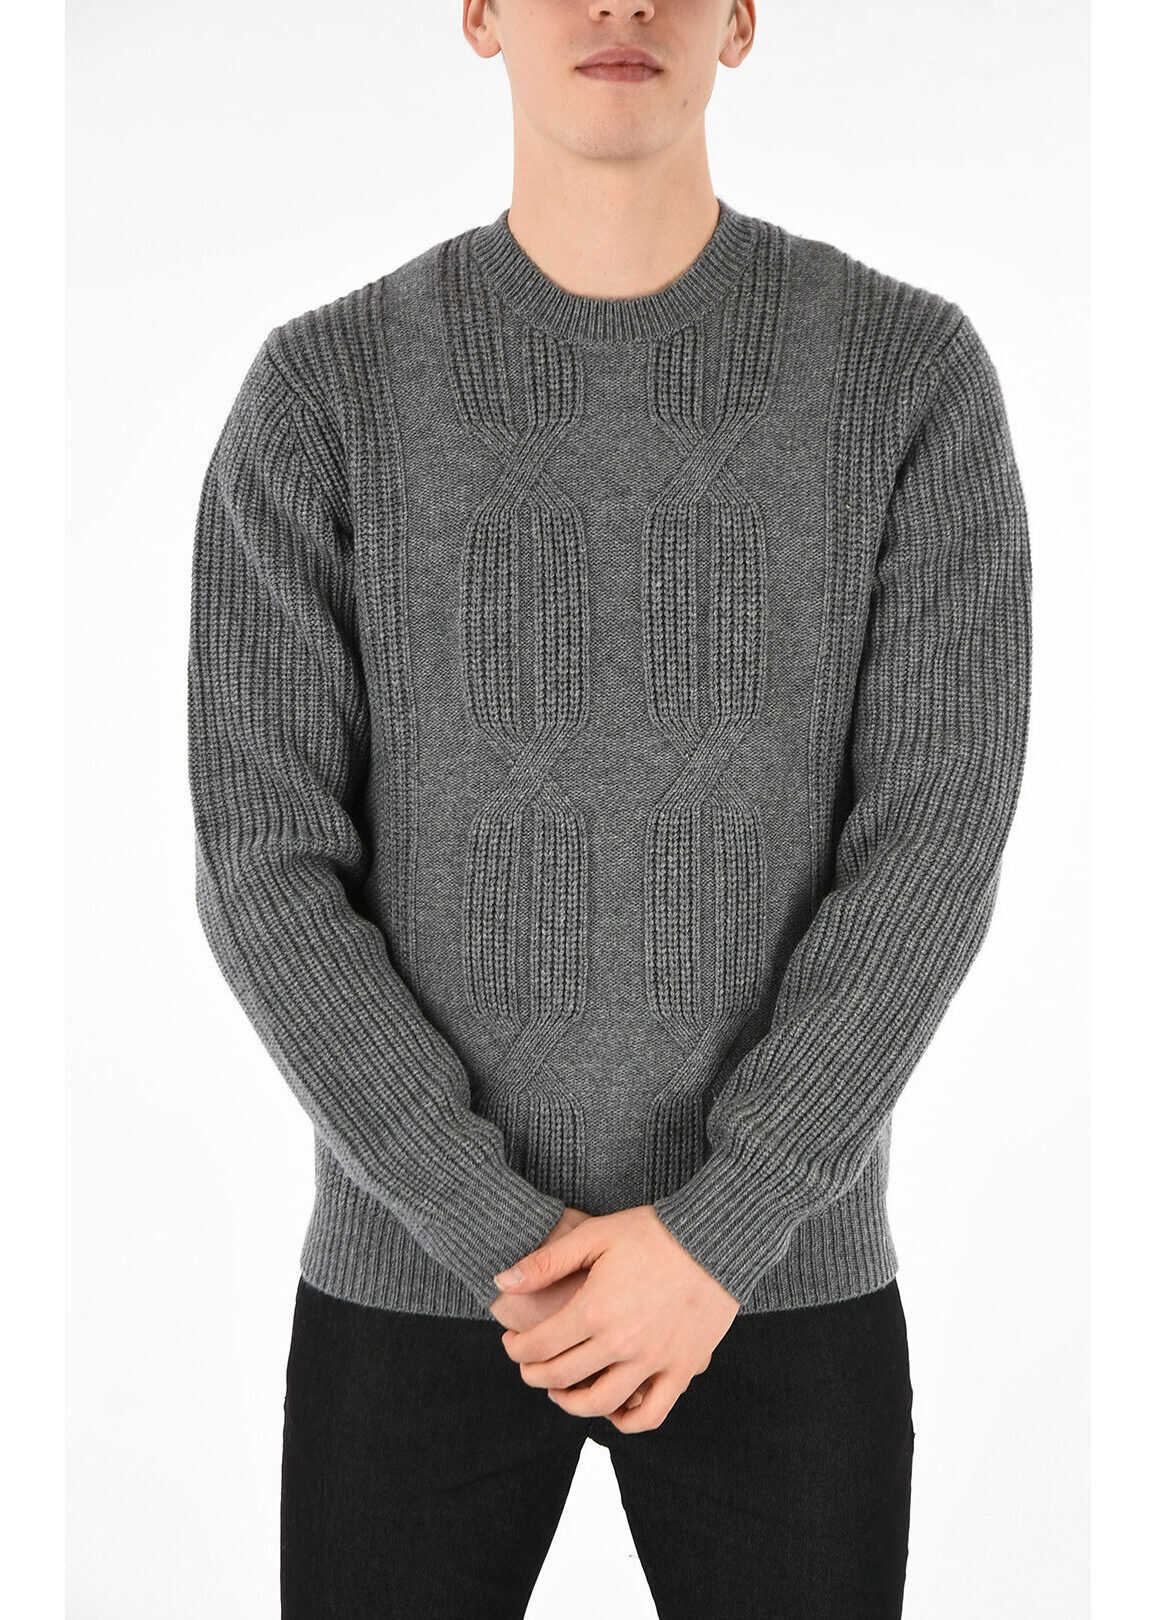 Armani EMPORIO Wool and Cashmere Sweater GRAY